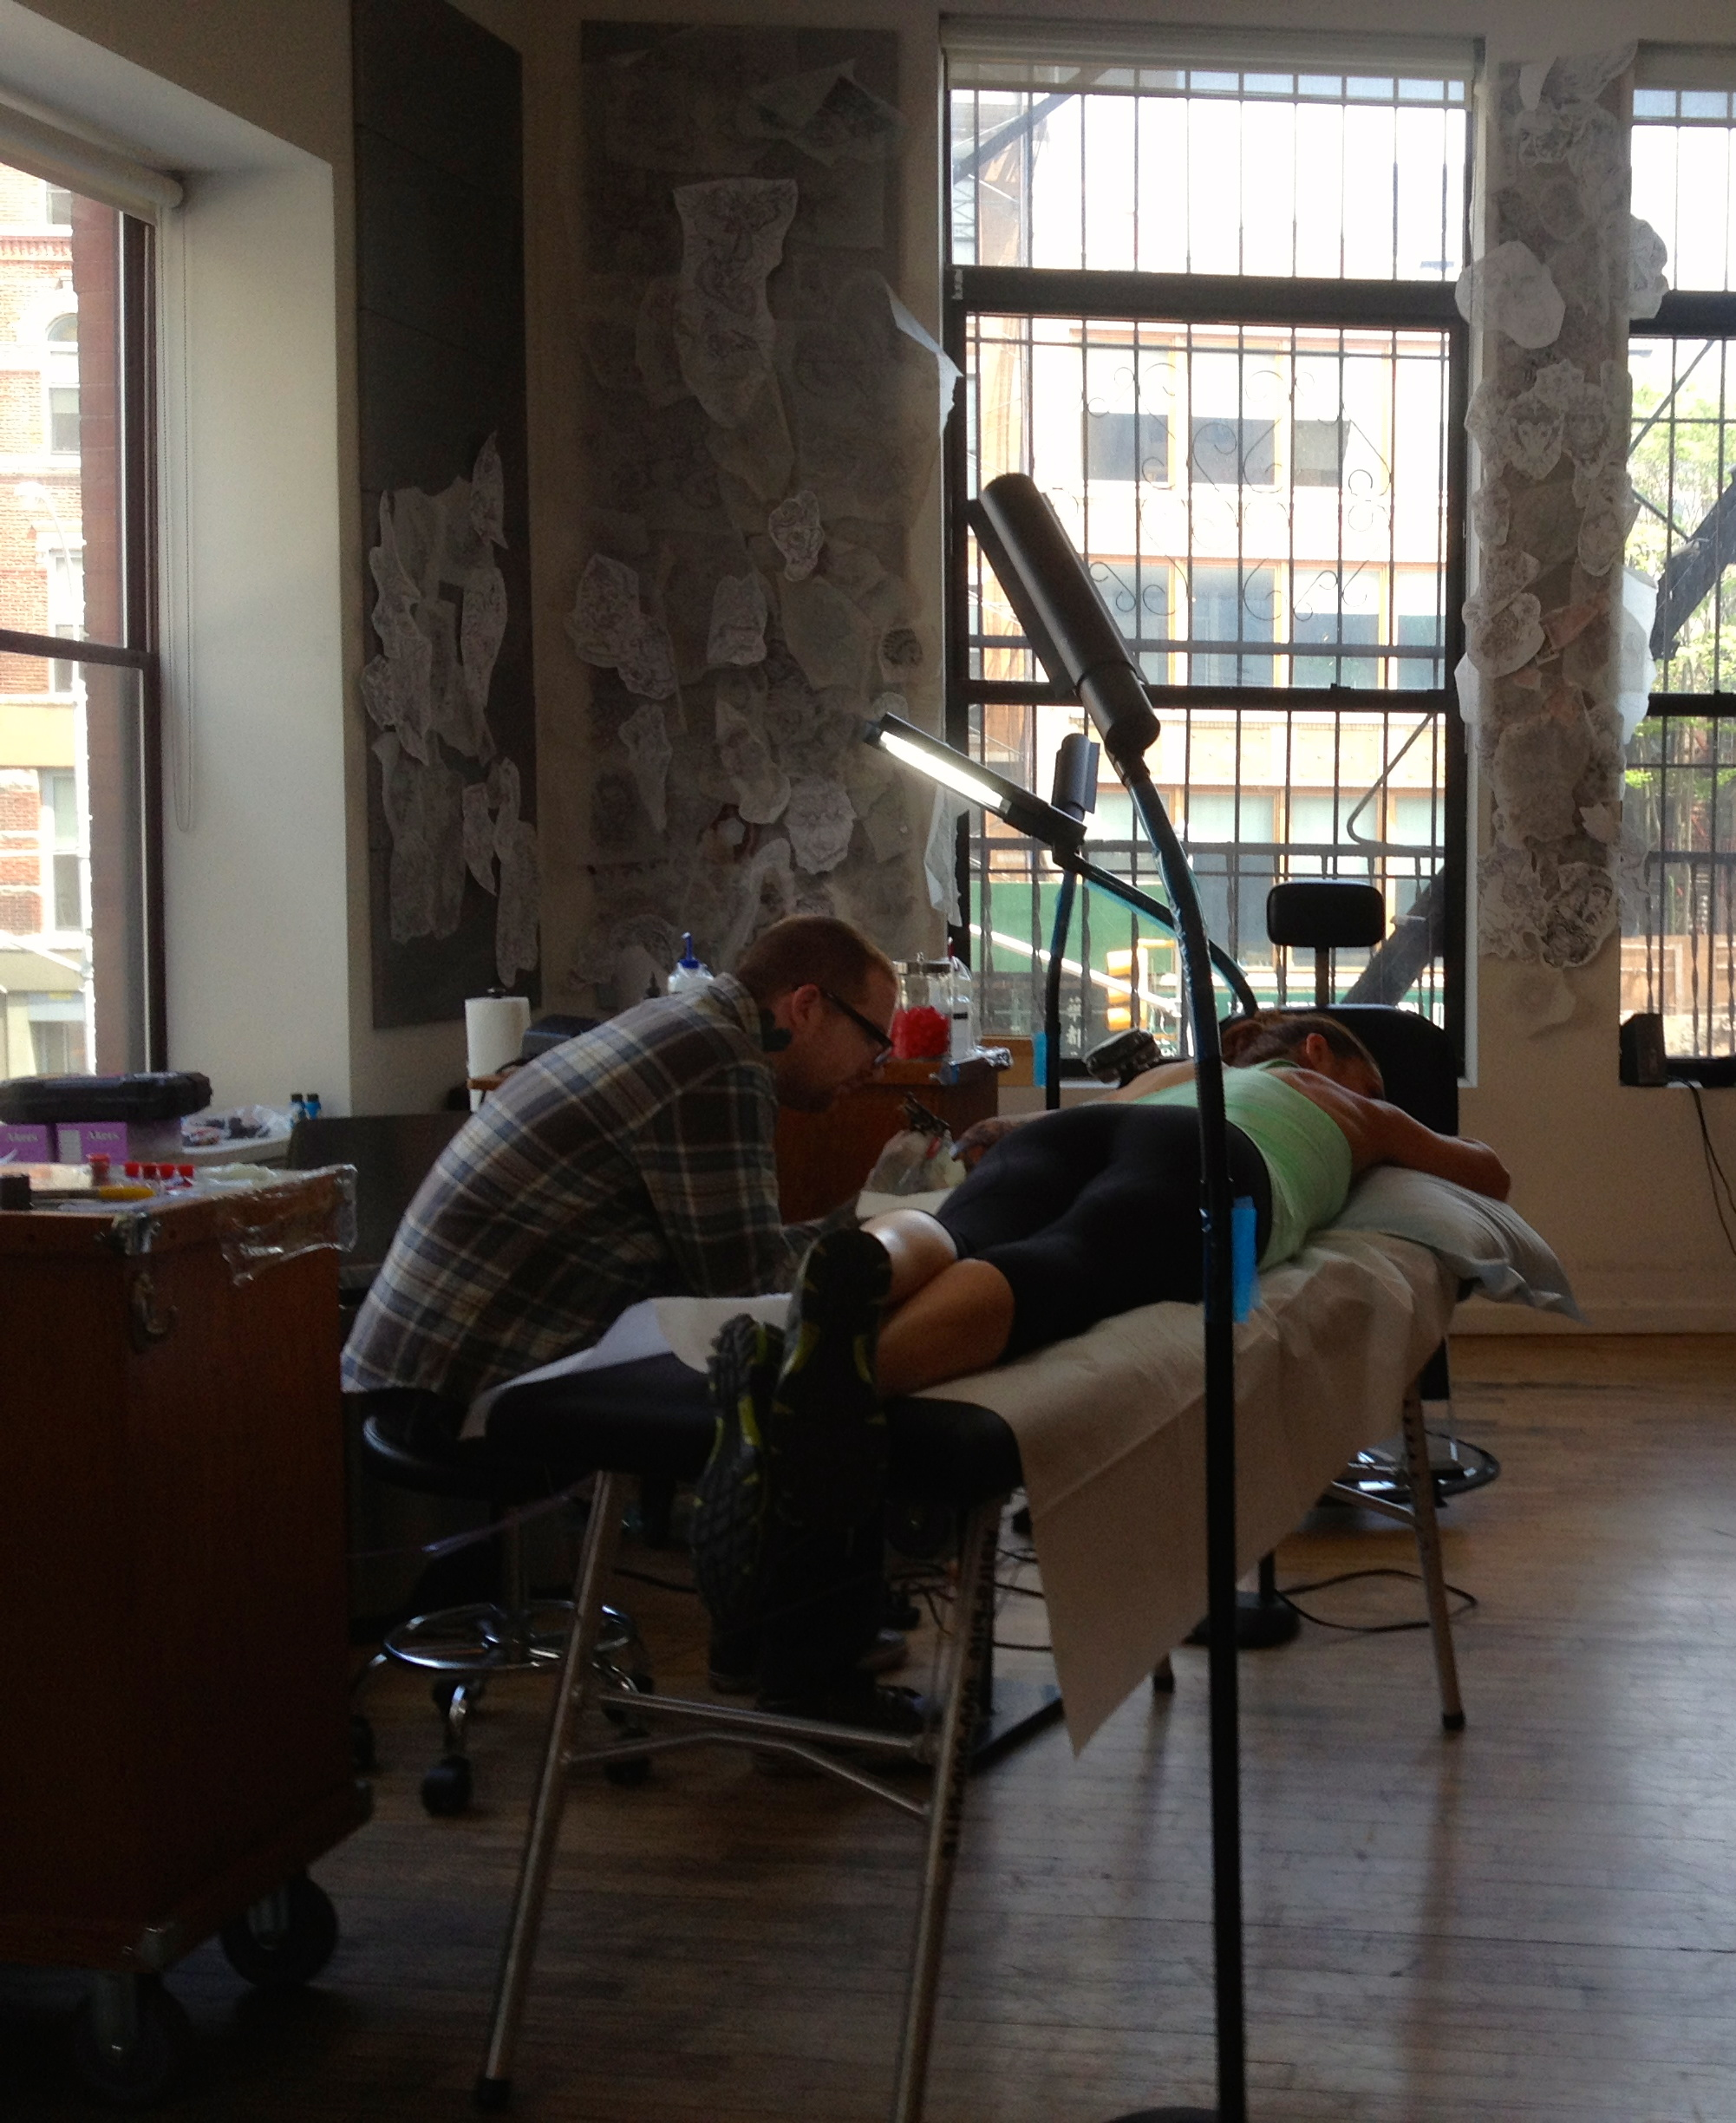 The Top 10 Tattoo Studios in NYC & Guide to Getting a Tattoo | The ...